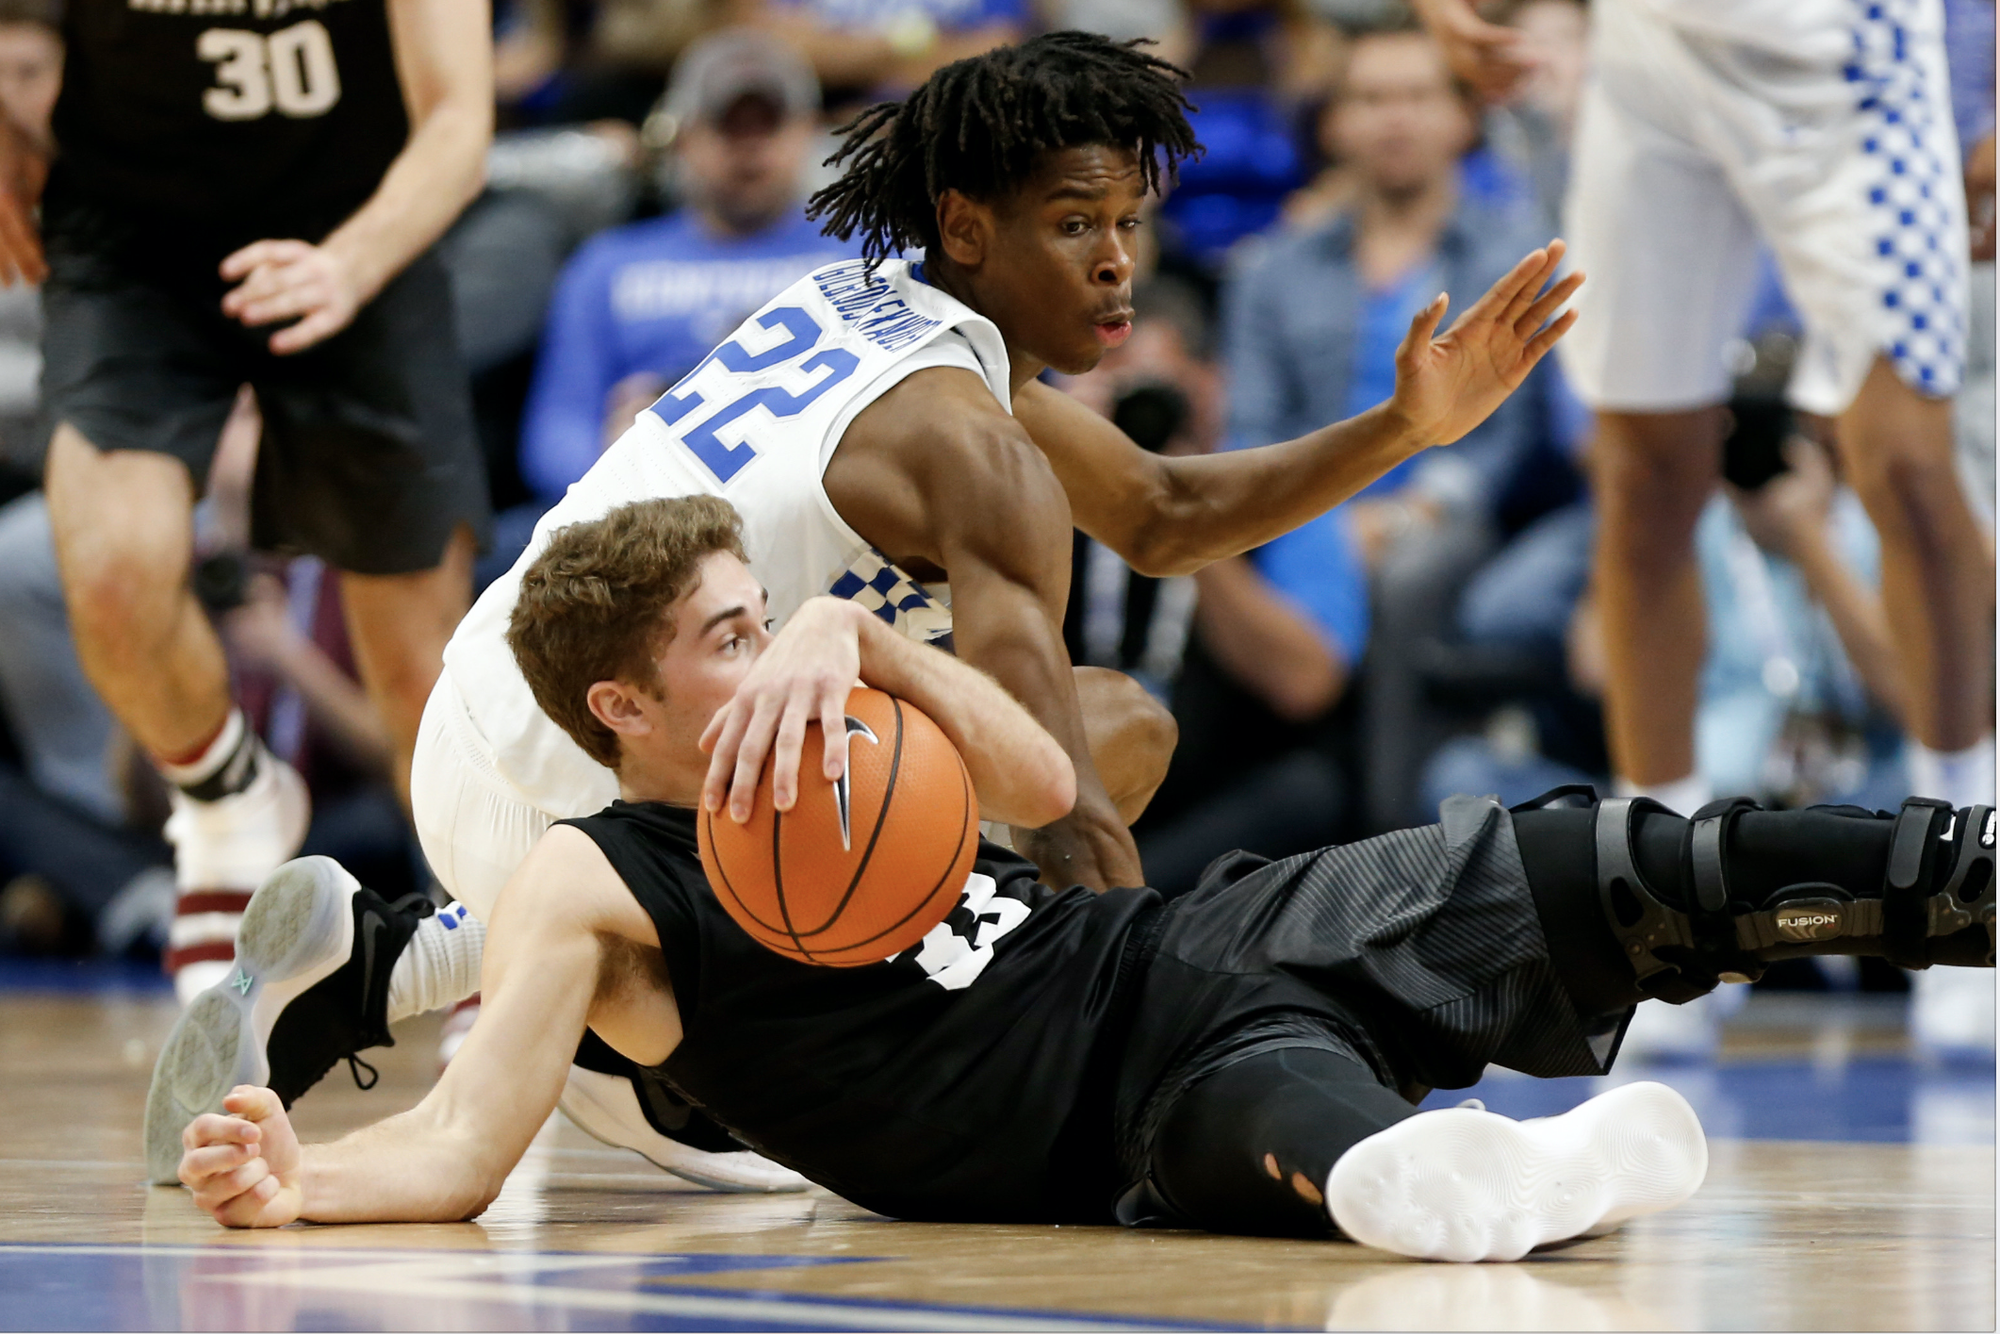 Farley diving to the ground in front of Kentucky's Shai Gilgeous-Alexander, now a member of the Oklahoma City Thunder averaging nearly 20 points per game.